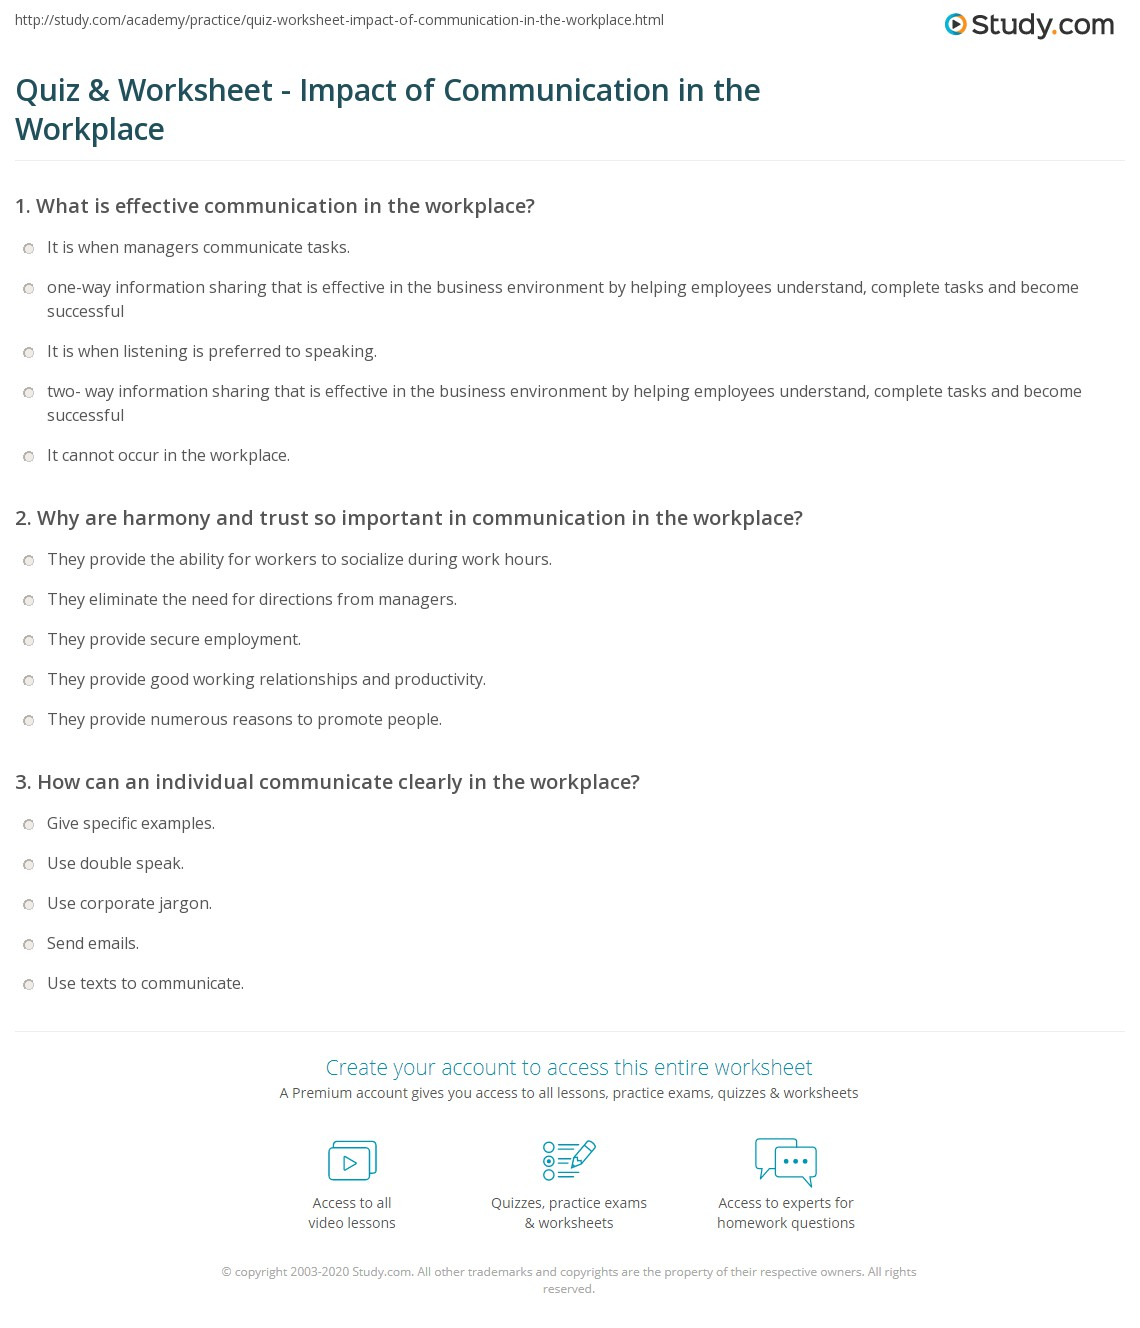 Quiz & Worksheet Impact of munication in the Workplace